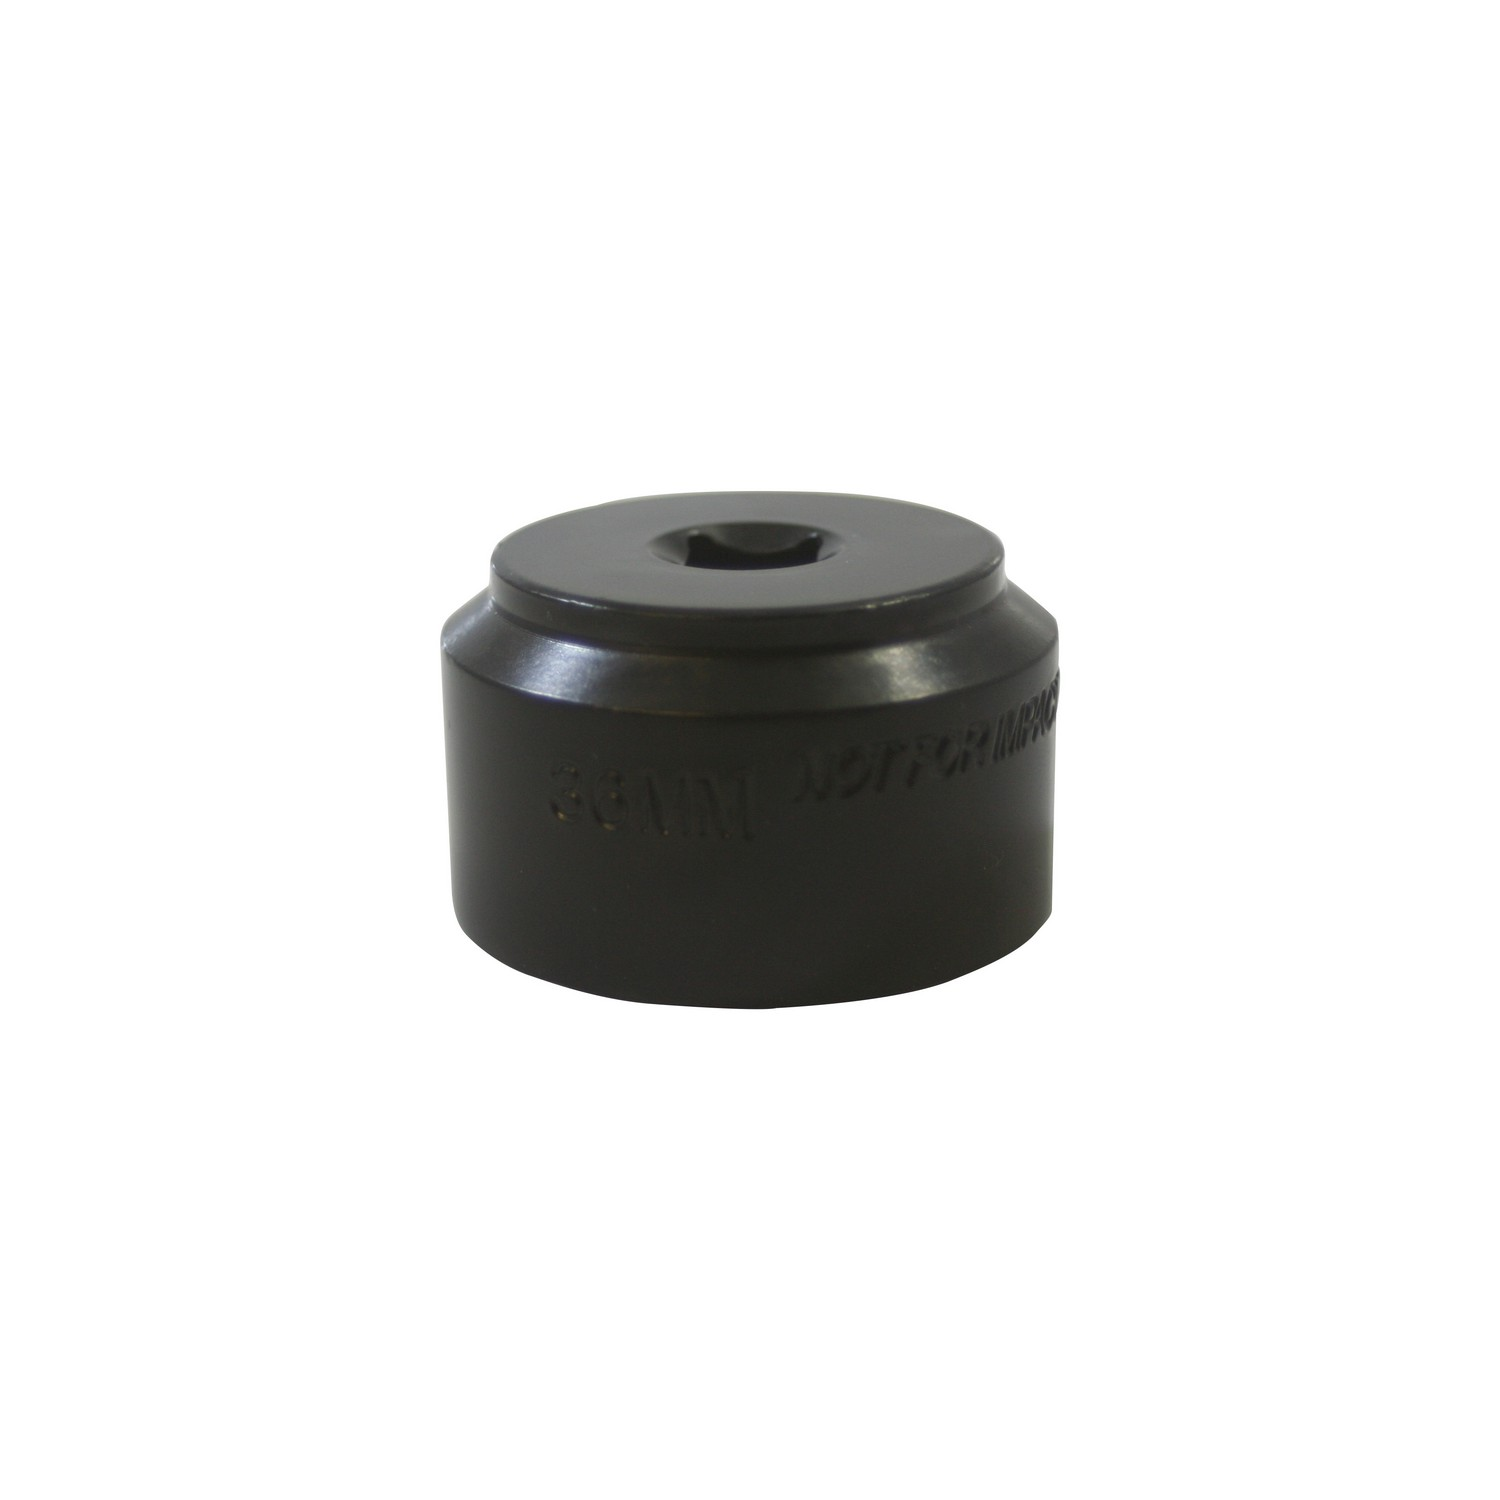 Lisle Tools 14500 Oil/Fuel Filter Socket for 6.0 Ford Diesel